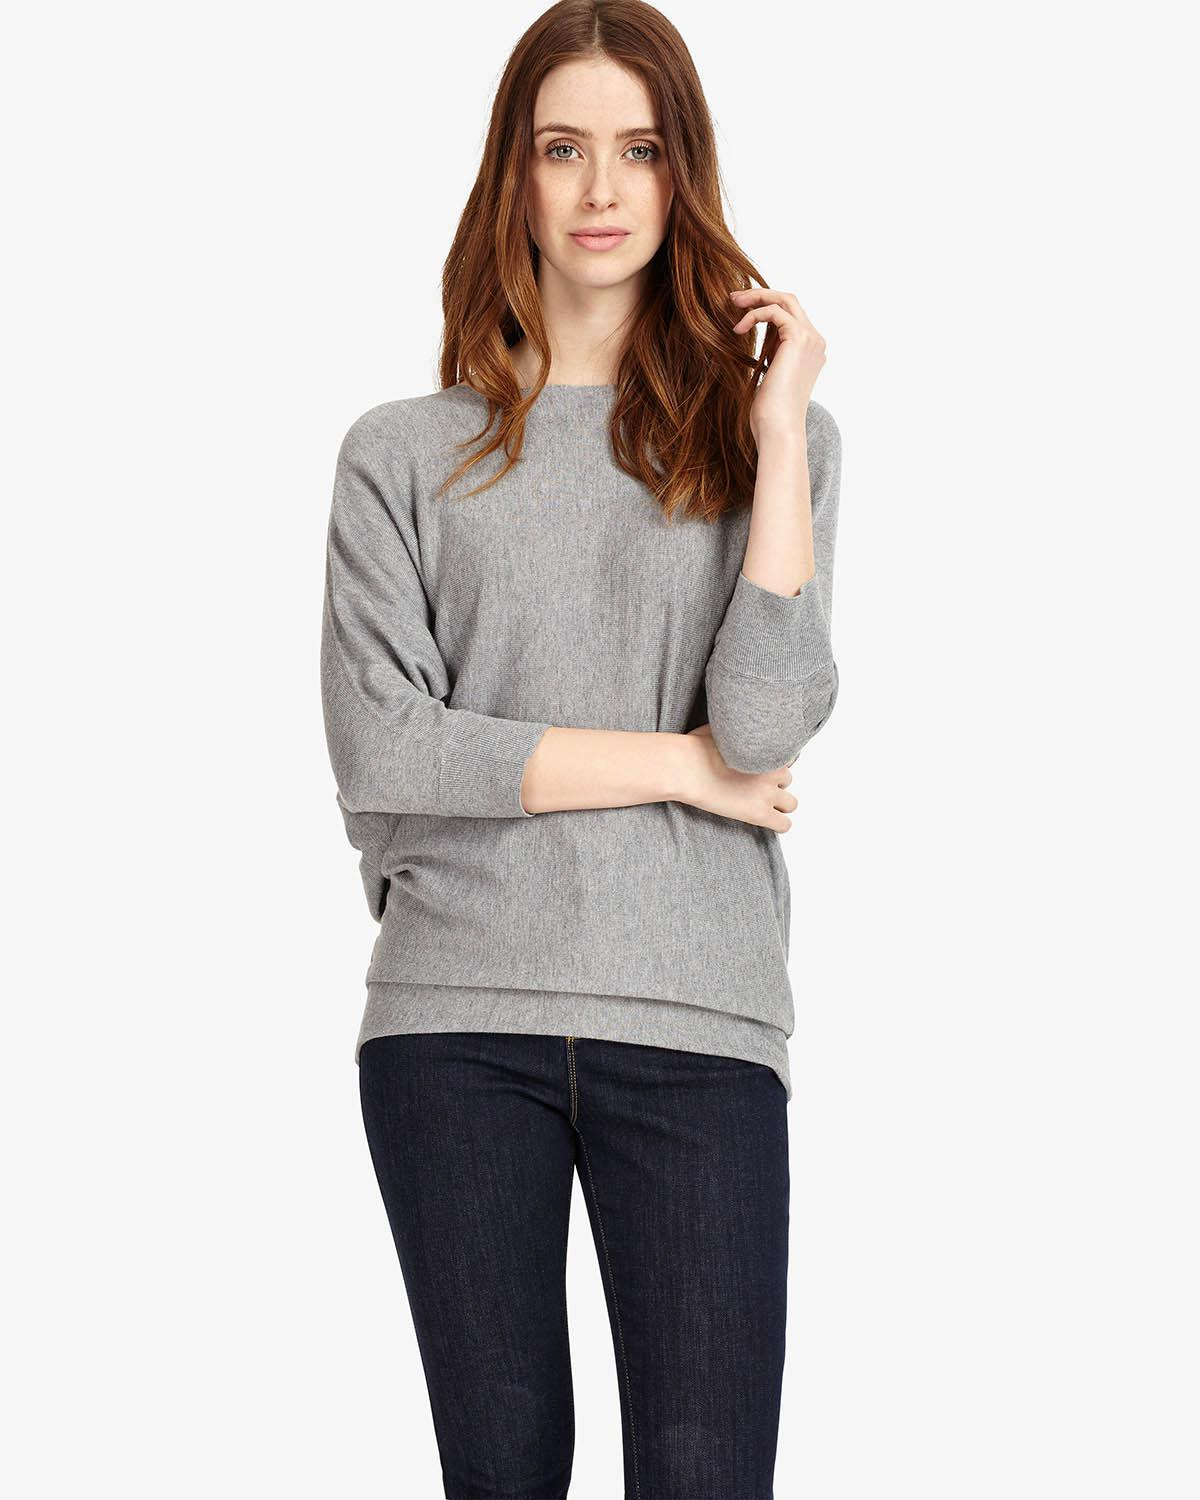 35a9a8a4a38 Phase Eight Becca Batwing Jumper in Gray - Lyst